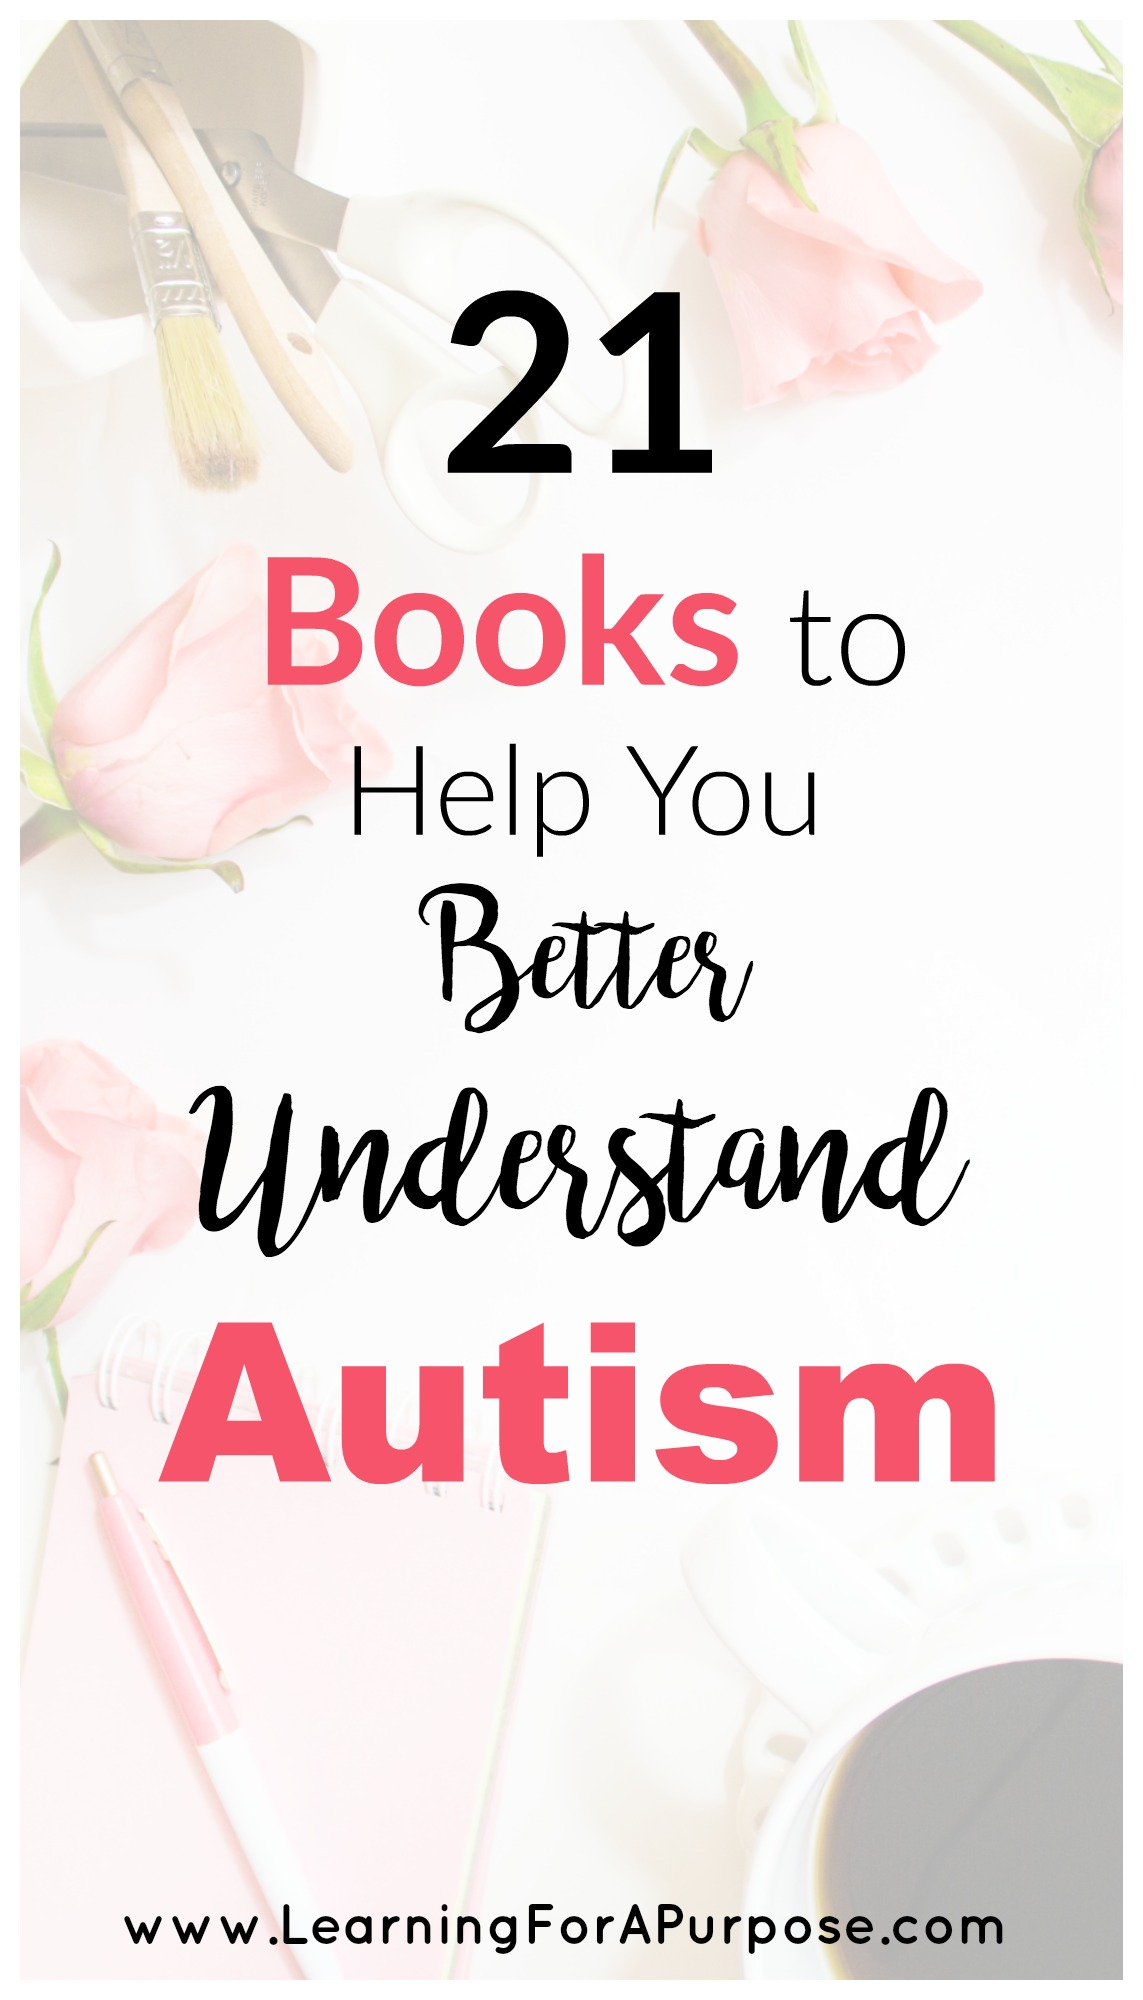 21 Books to Help you Better Understand Autism Pin